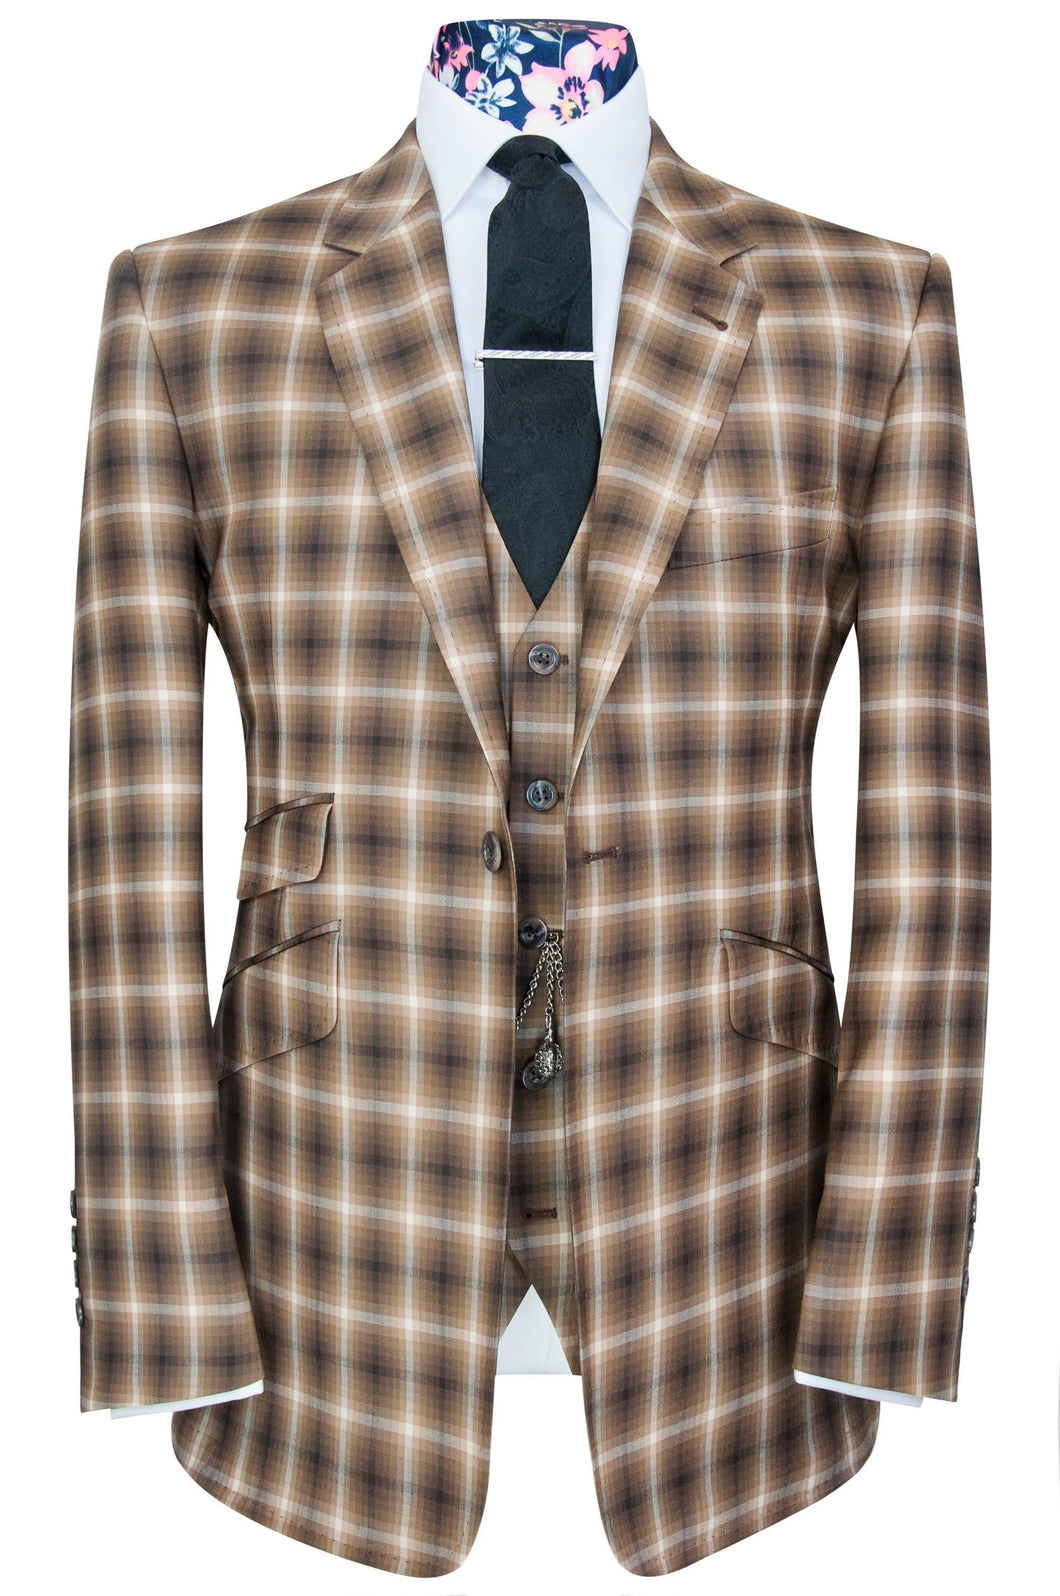 The Caldwell Barley Suit With Daisy White Windowpane Check Aw18 Black Label Suits